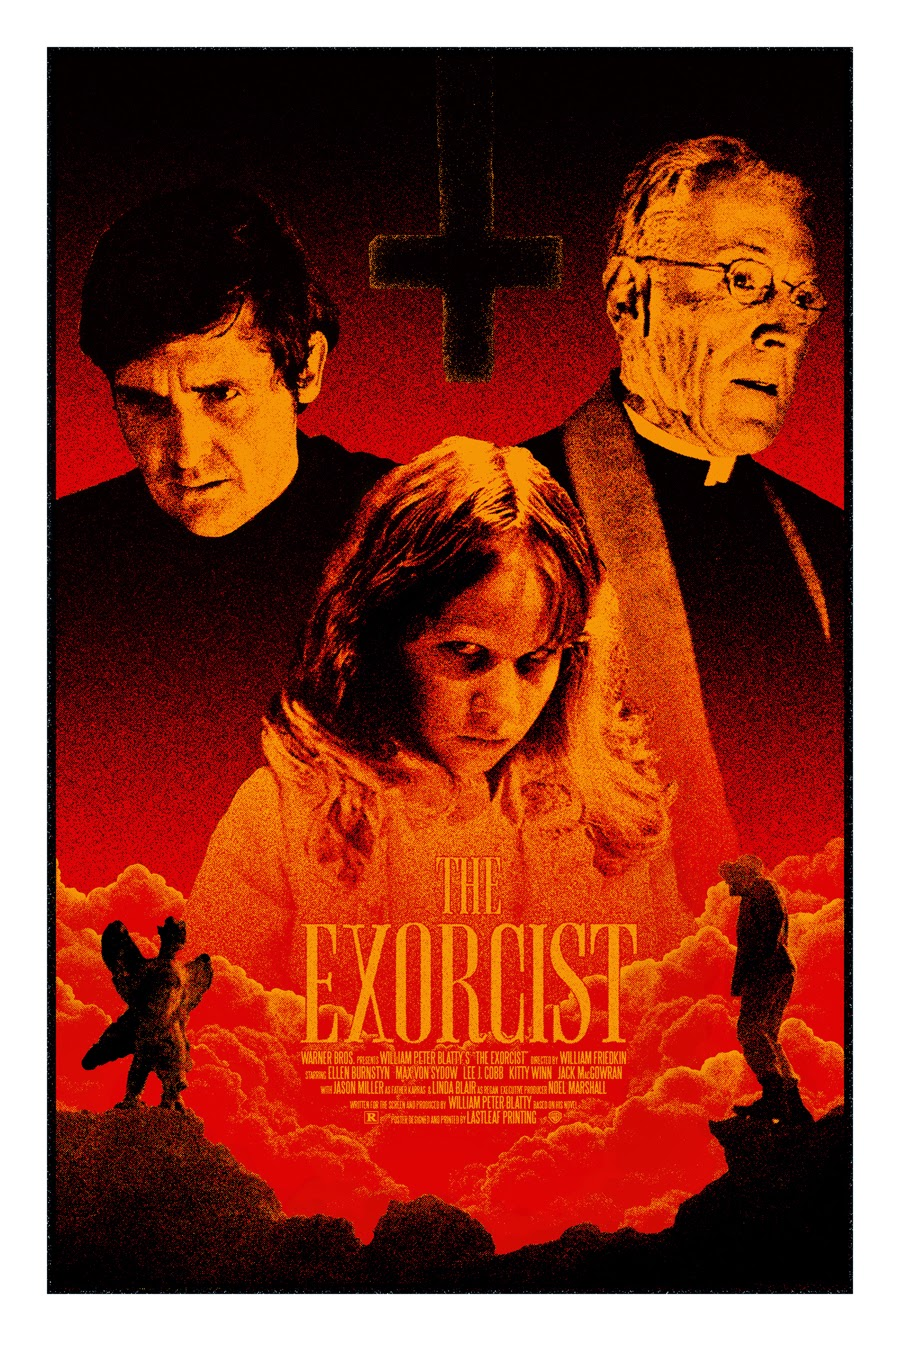 Inside The Rock Poster Frame Blog The Exorcist Movie